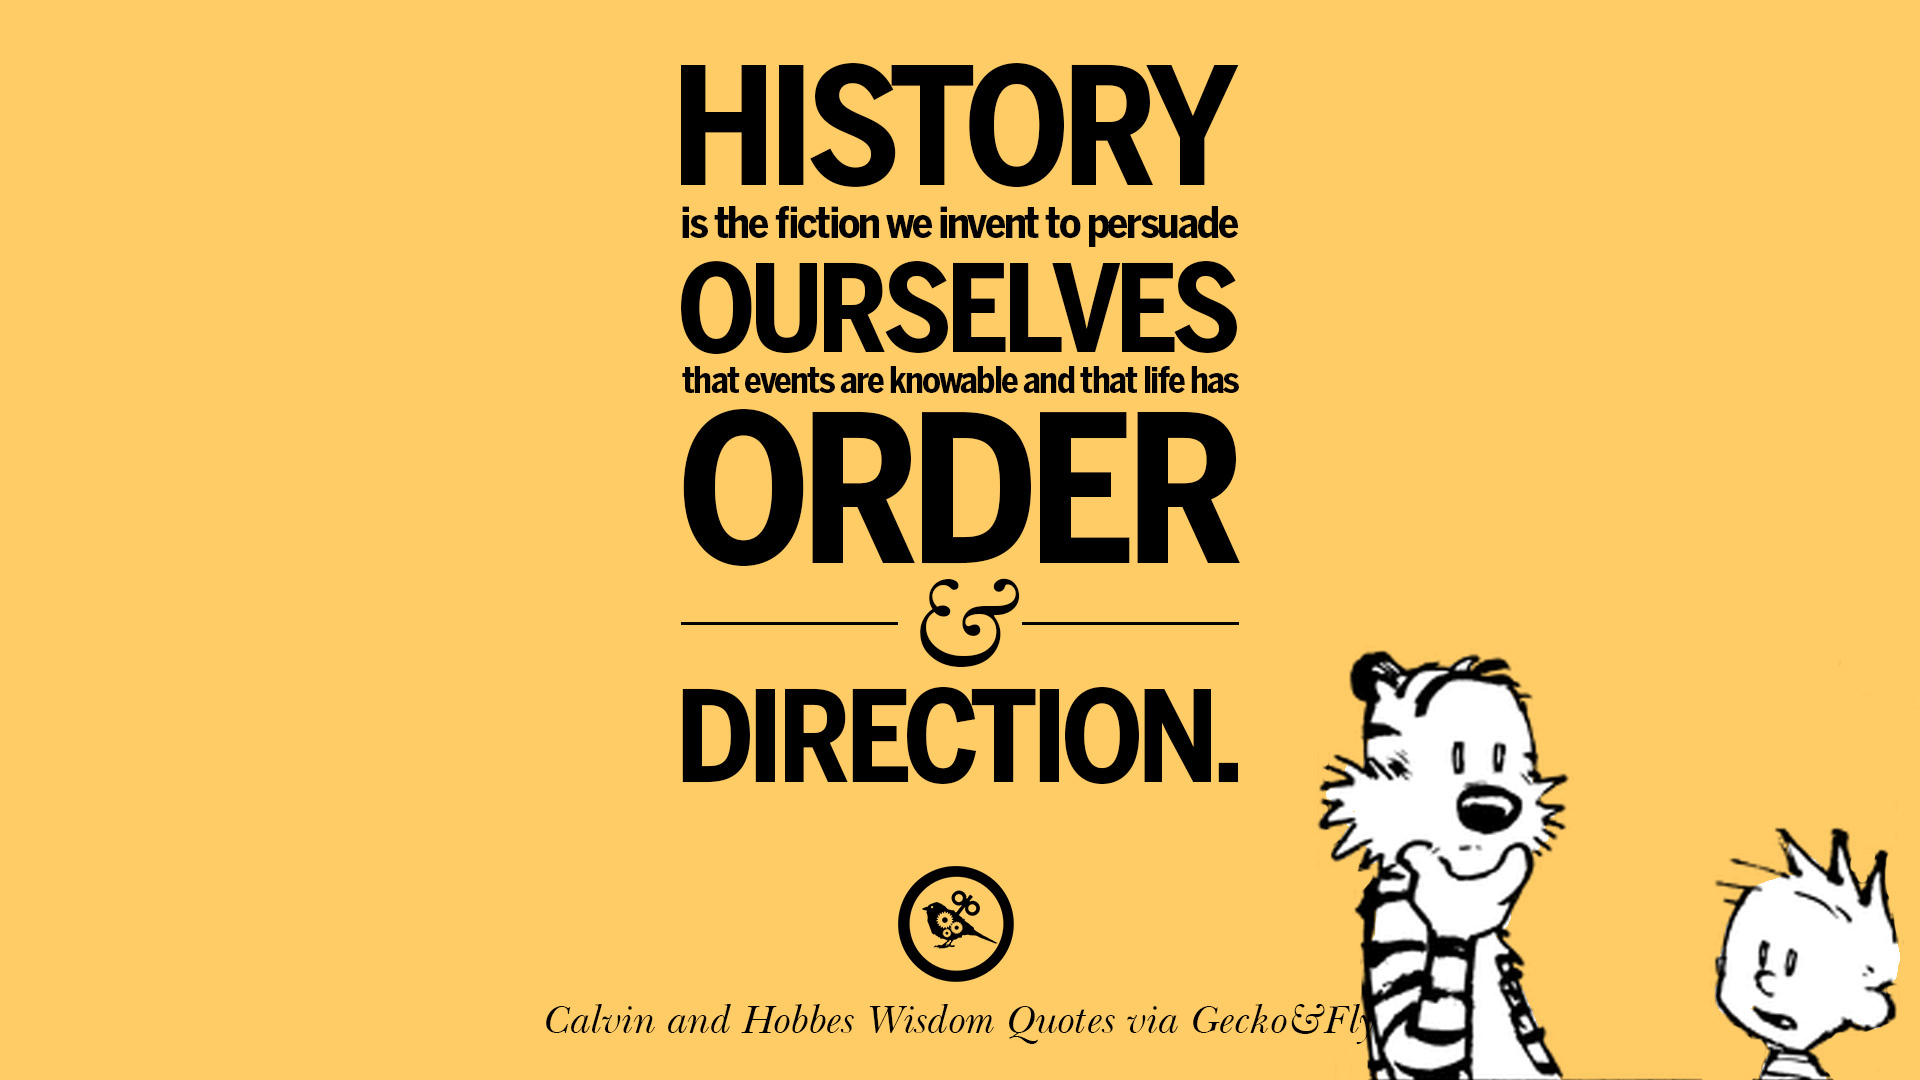 Wise Quotes: 10 Calvin And Hobbes Words Of Wisdom Quotes And Wise Sayings